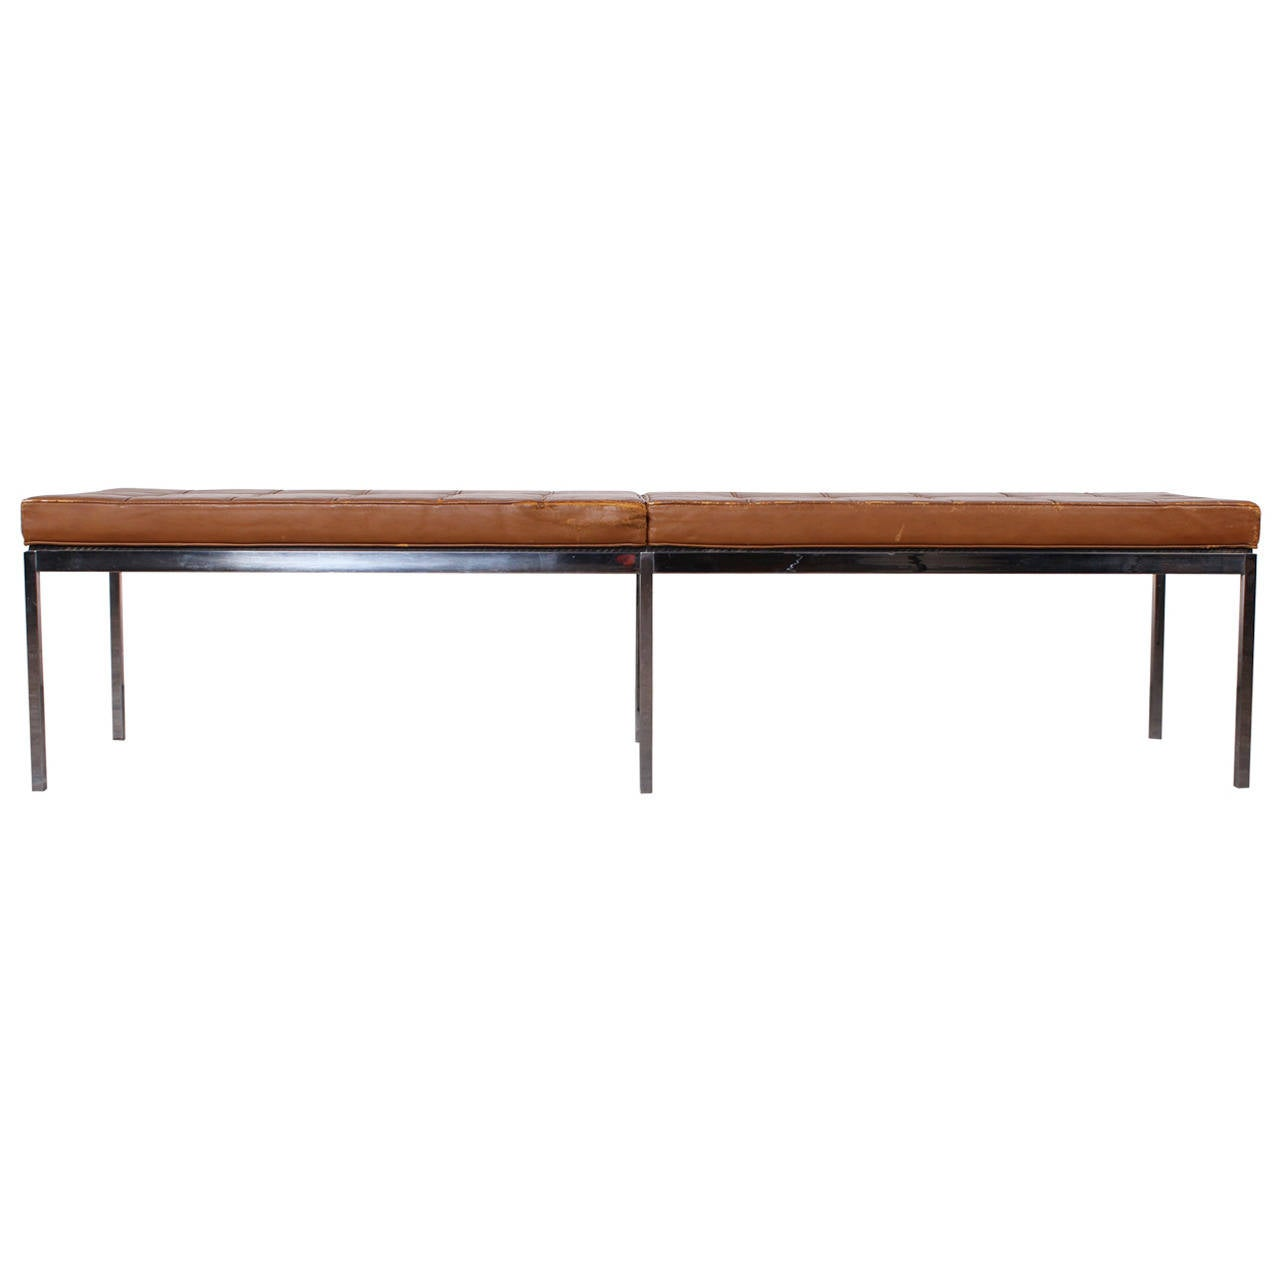 Bench By Florence Knoll At 1stdibs